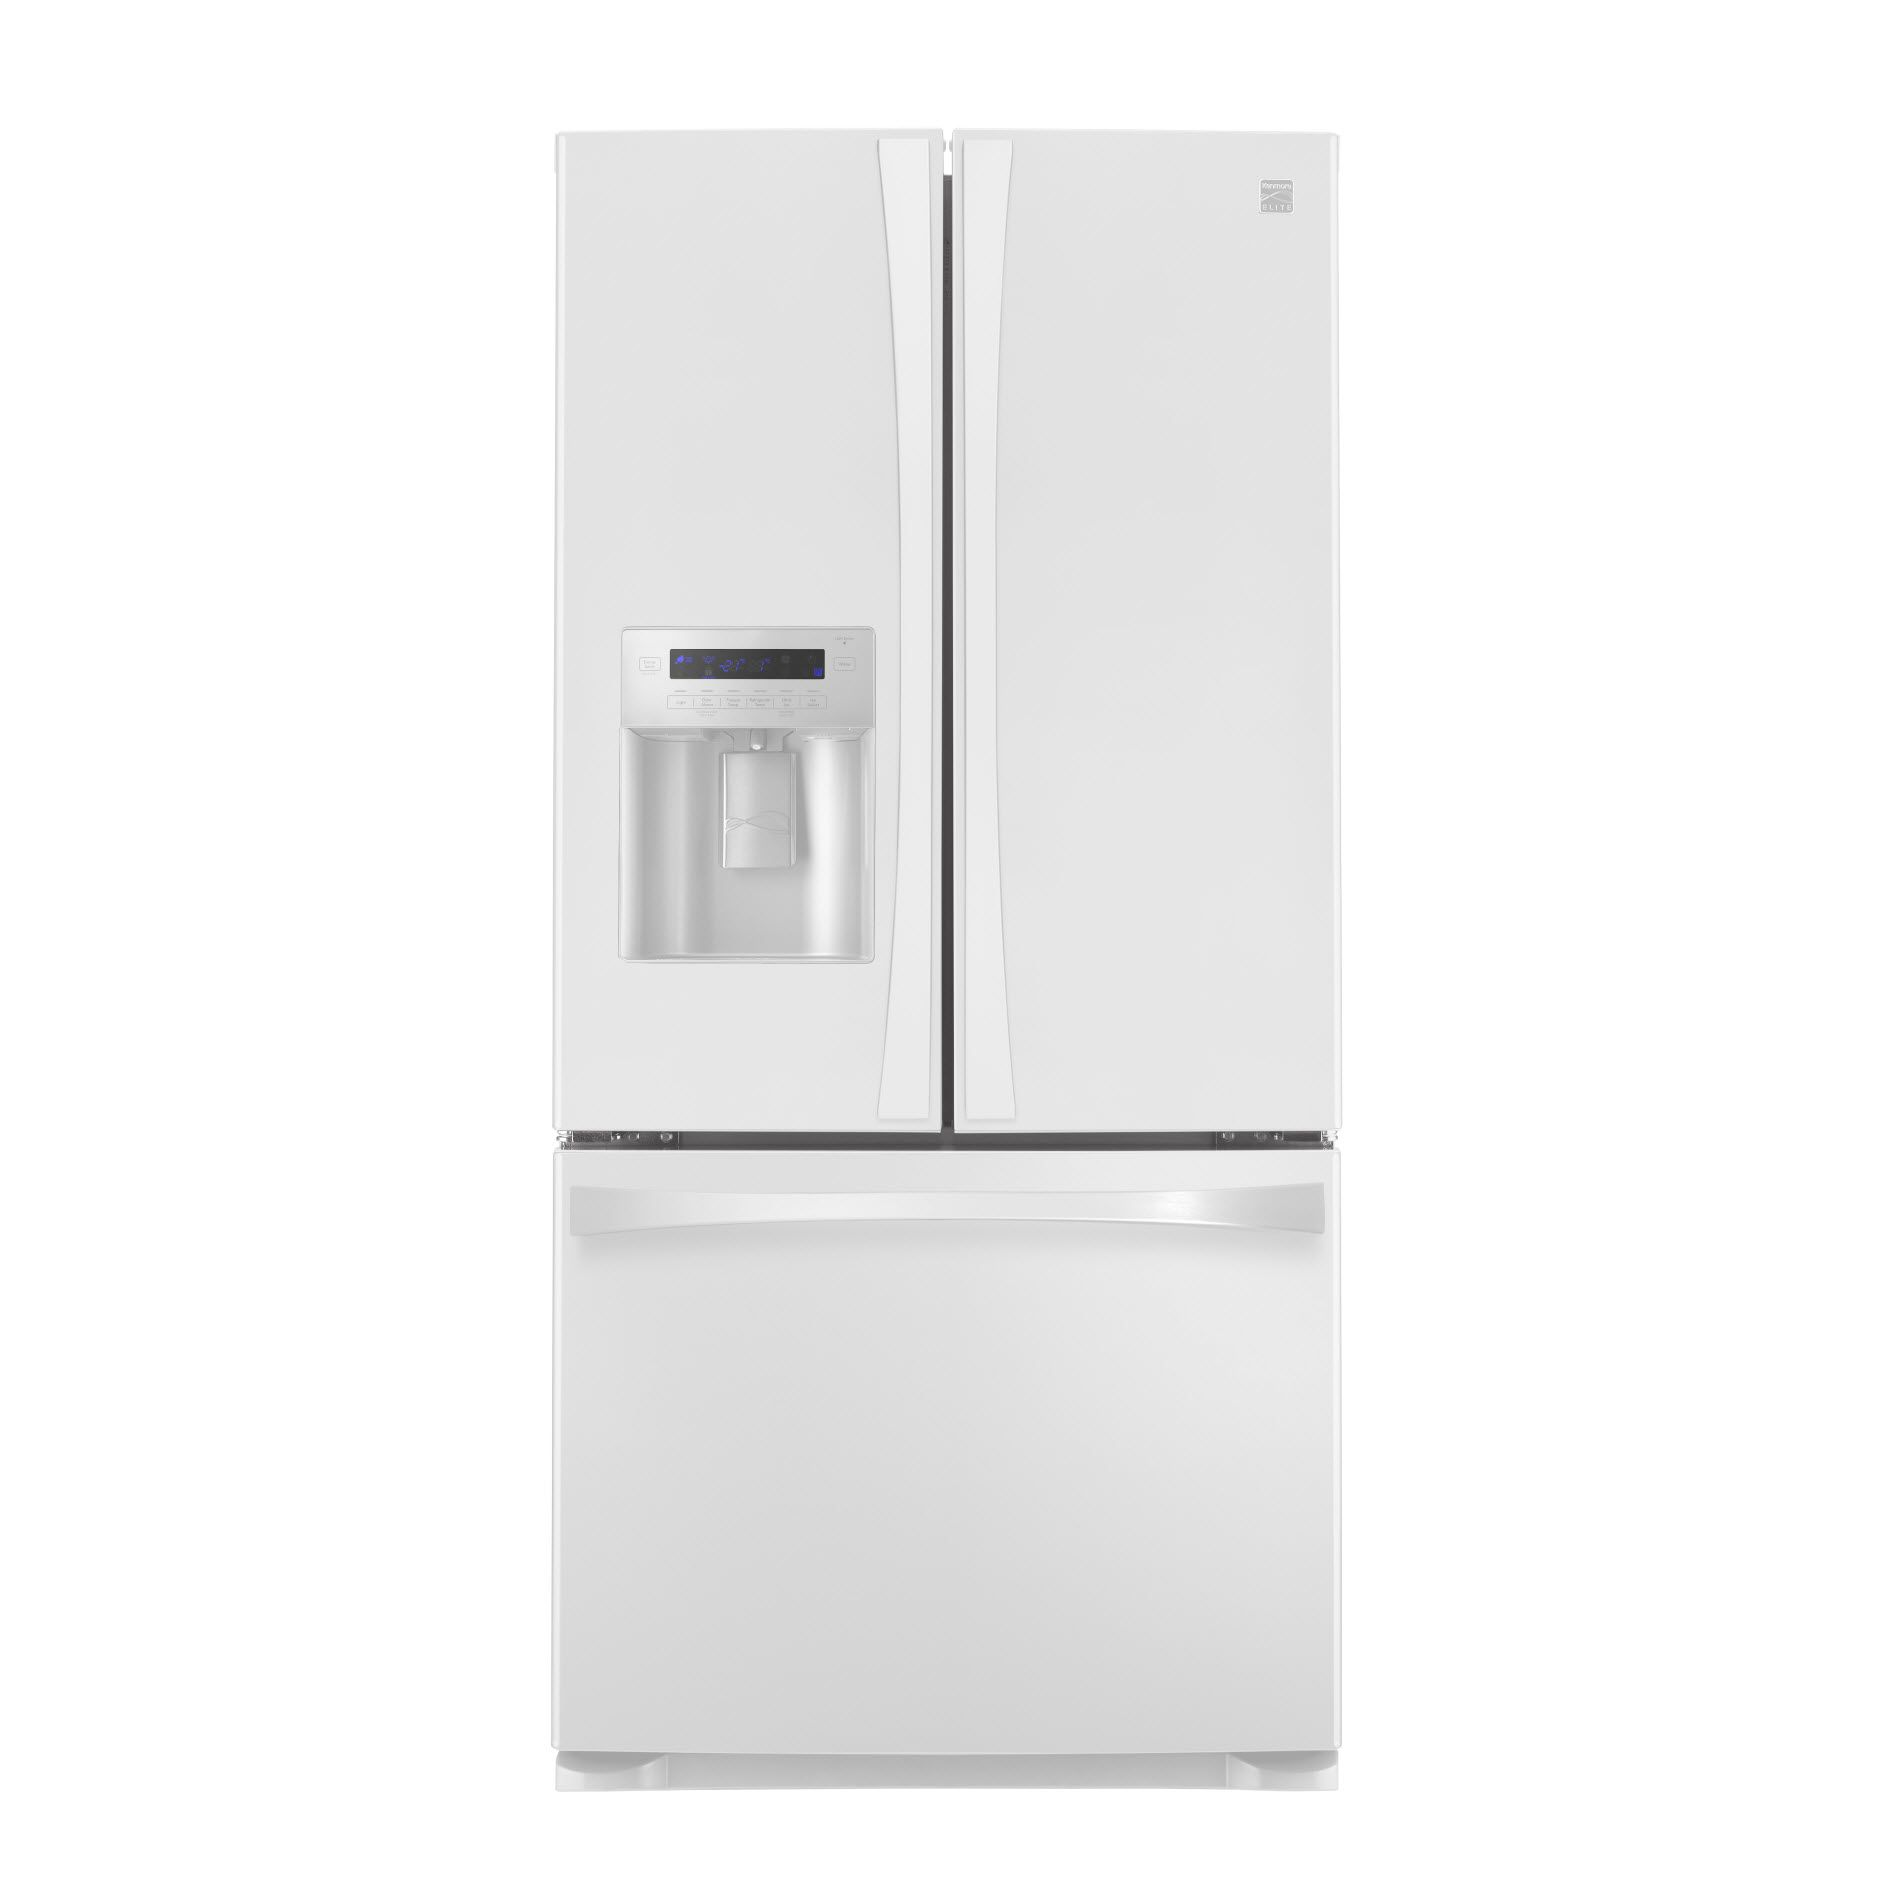 Kenmore Elite  25.0 cu. ft. French-Door Bottom-Freezer Refrigerator